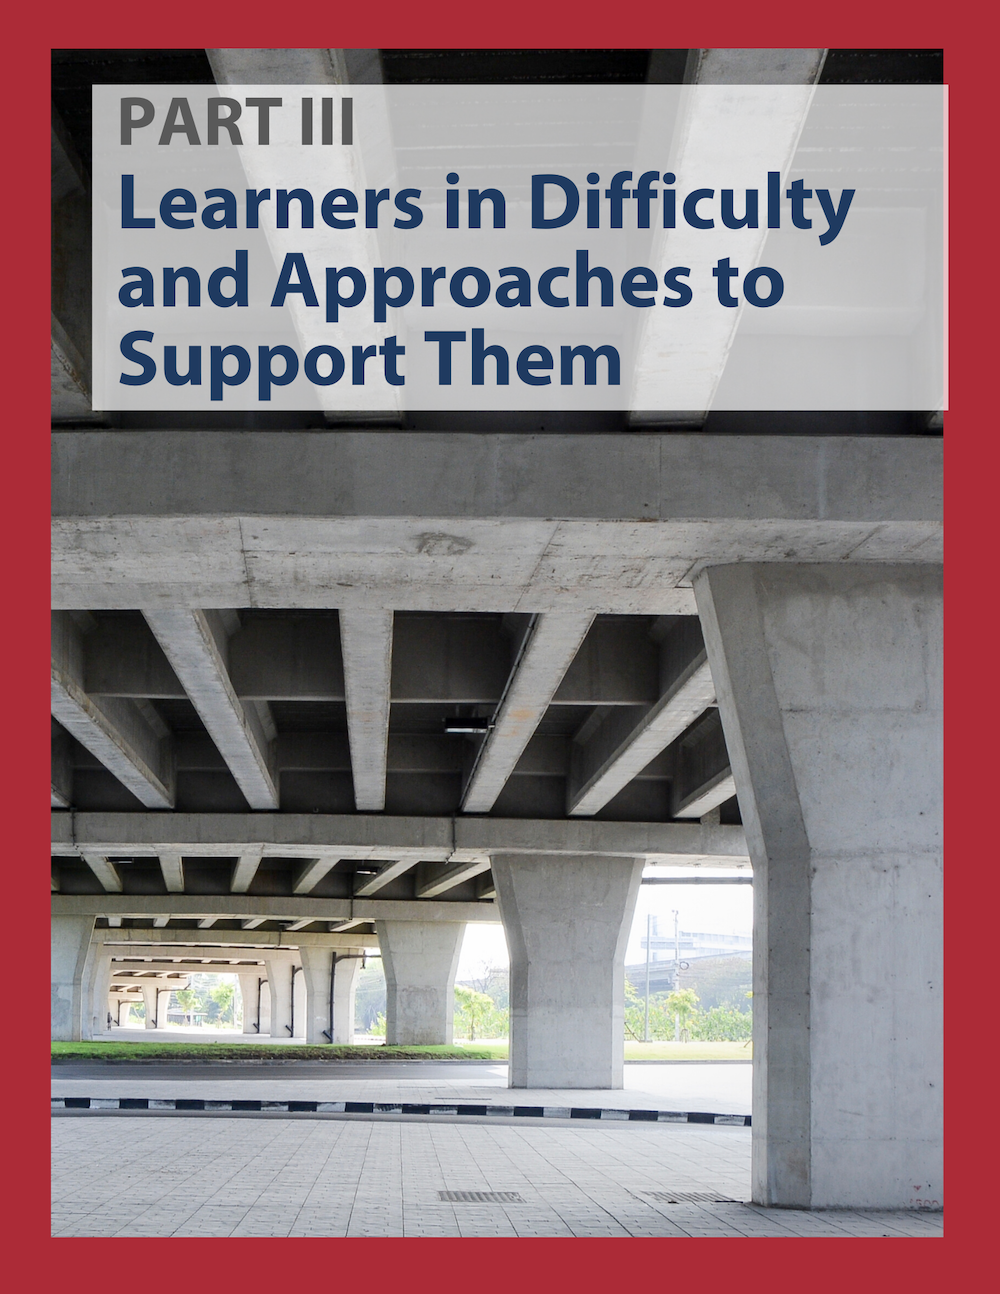 Link to a PDF  - Part 3: Learners in Difficulty and Approaches to Support Them